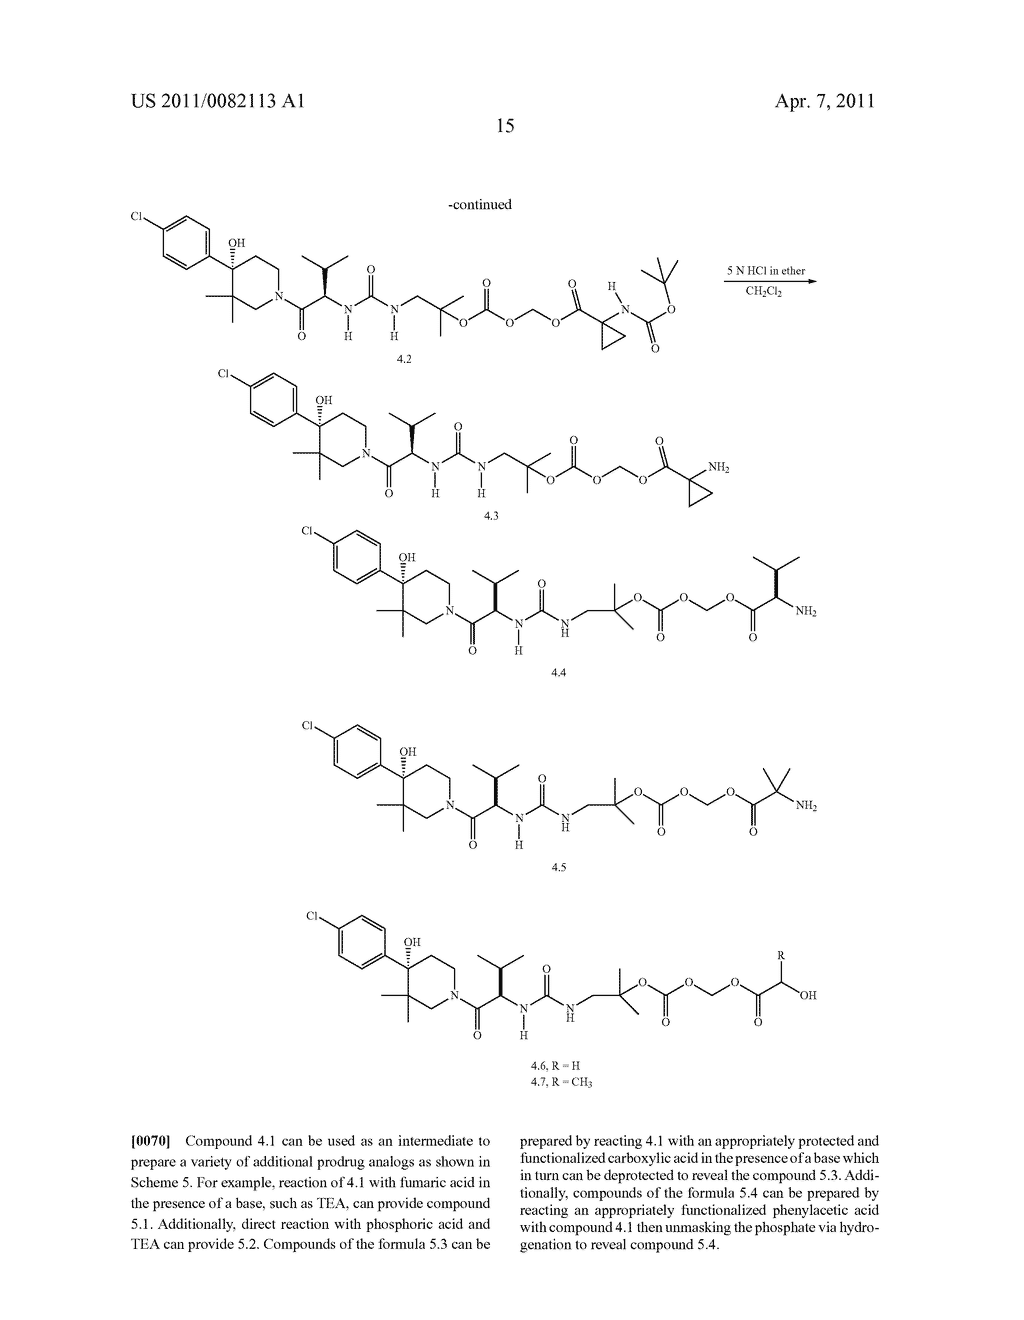 PRODRUGS OF A PIPERIDINYL DERIVATIVE AS MODULATORS OF CHEMOKINE RECEPTOR ACTIVITY - diagram, schematic, and image 16